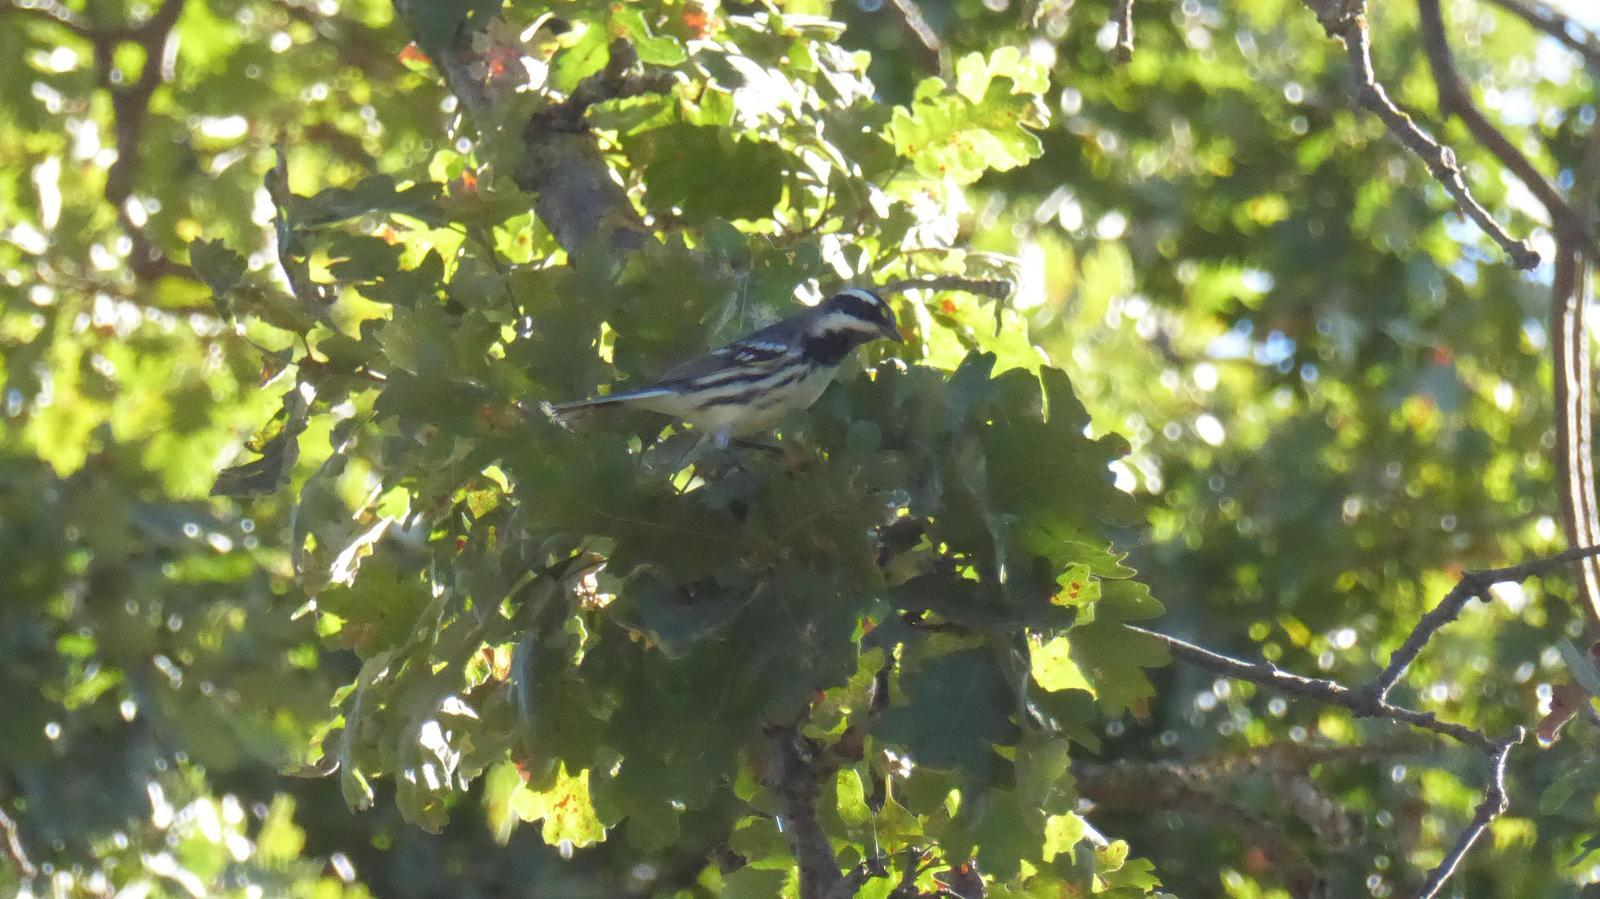 Black-throated Gray Warbler Photo by Daliel Leite